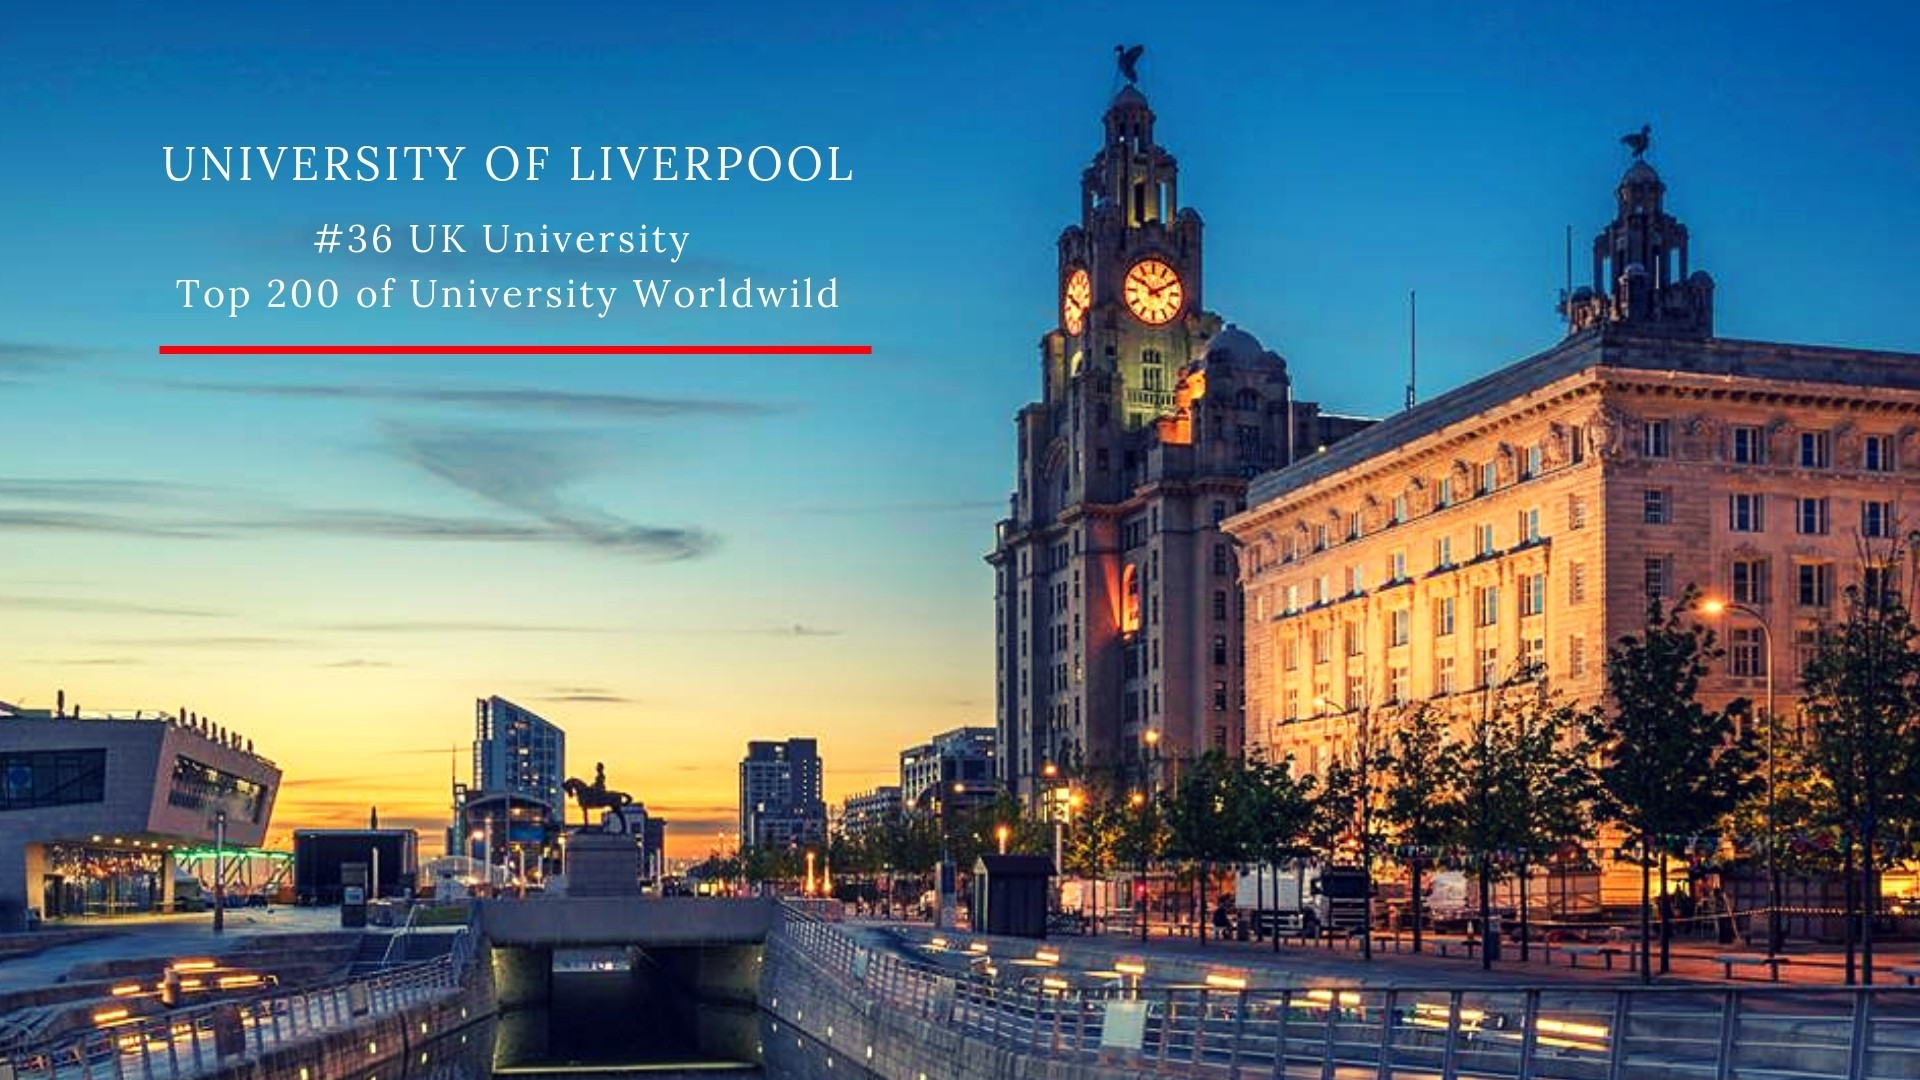 The University of Liverpool